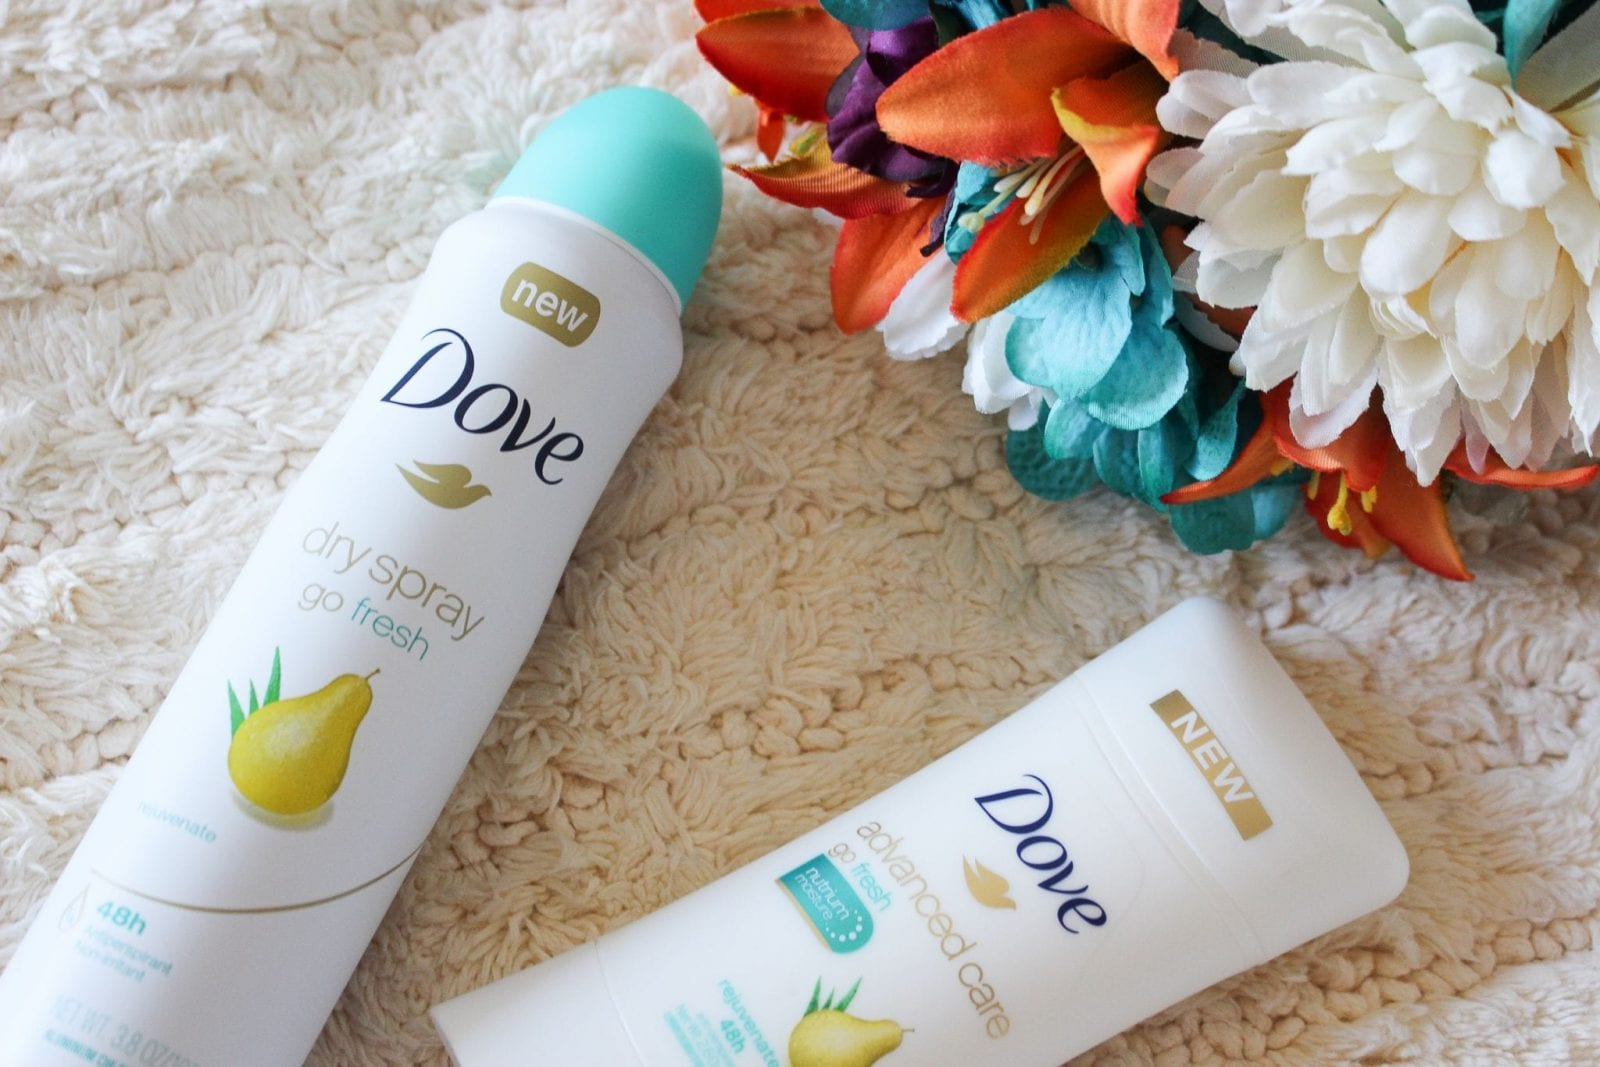 This is a close up of the new Dove Pear & Aloe Versa Antiperspirant and Dry Spray.